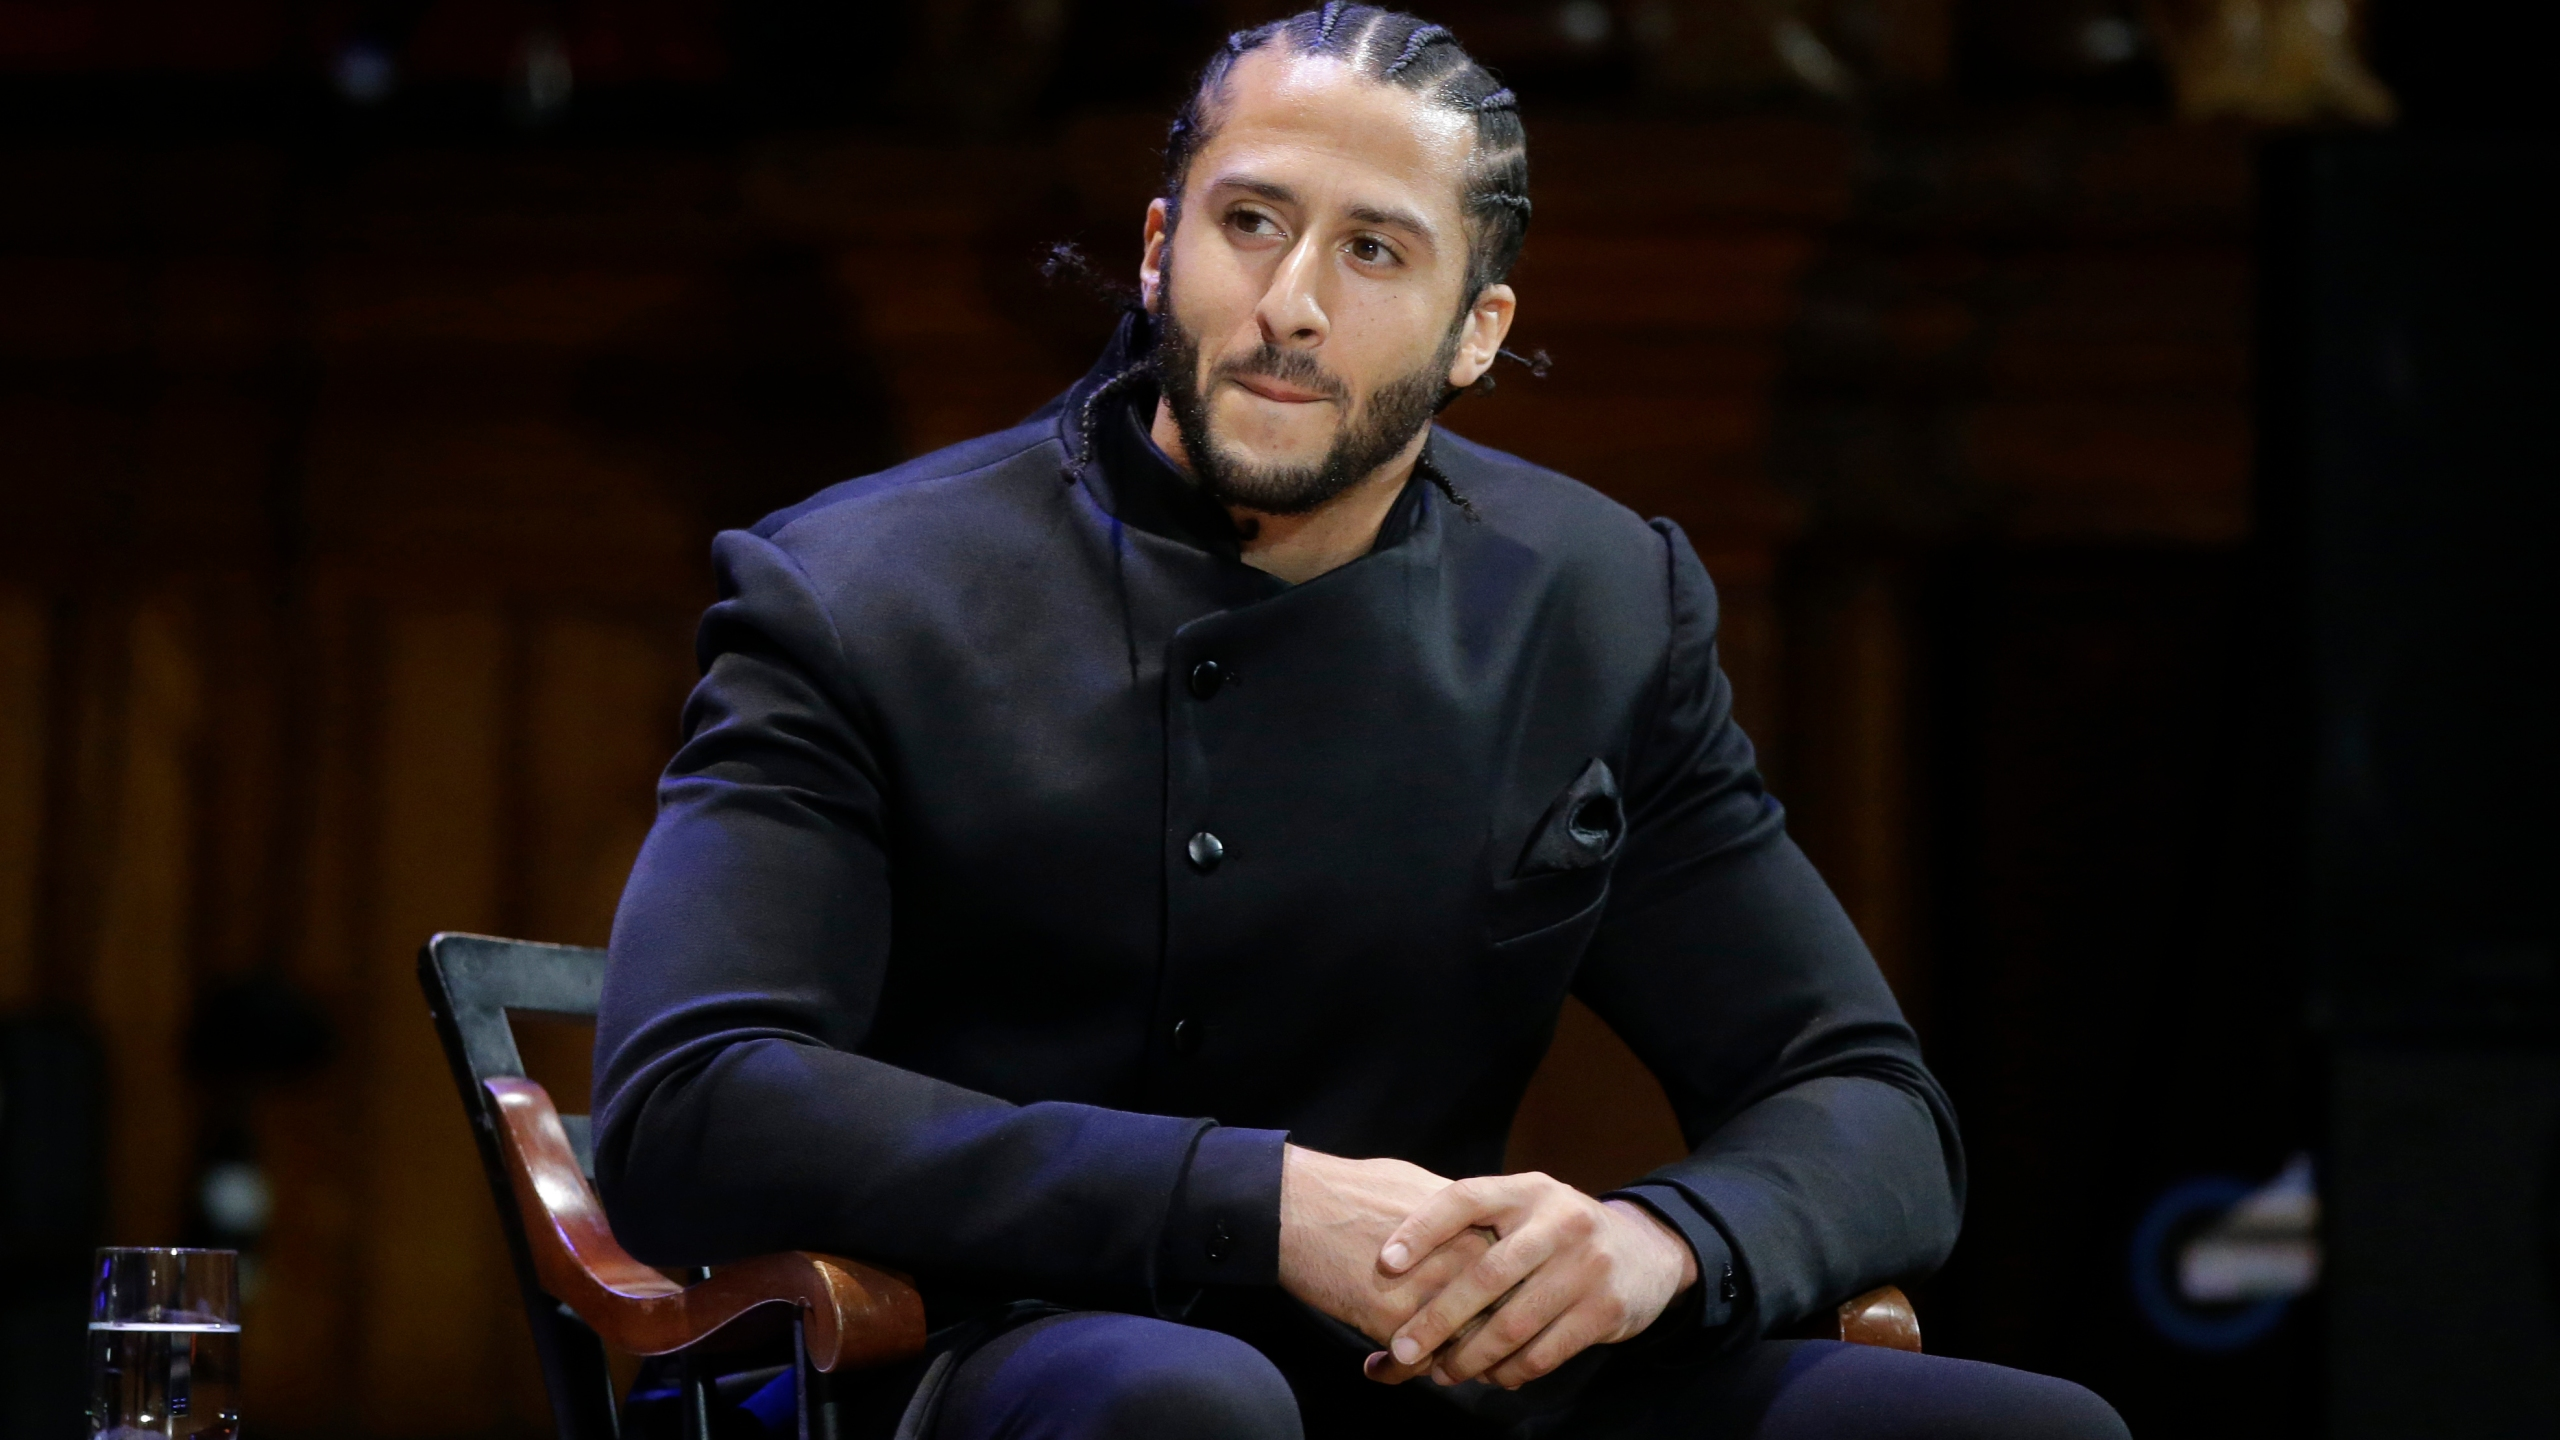 Alliance_Kaepernick_Football_35402-159532.jpg83764802